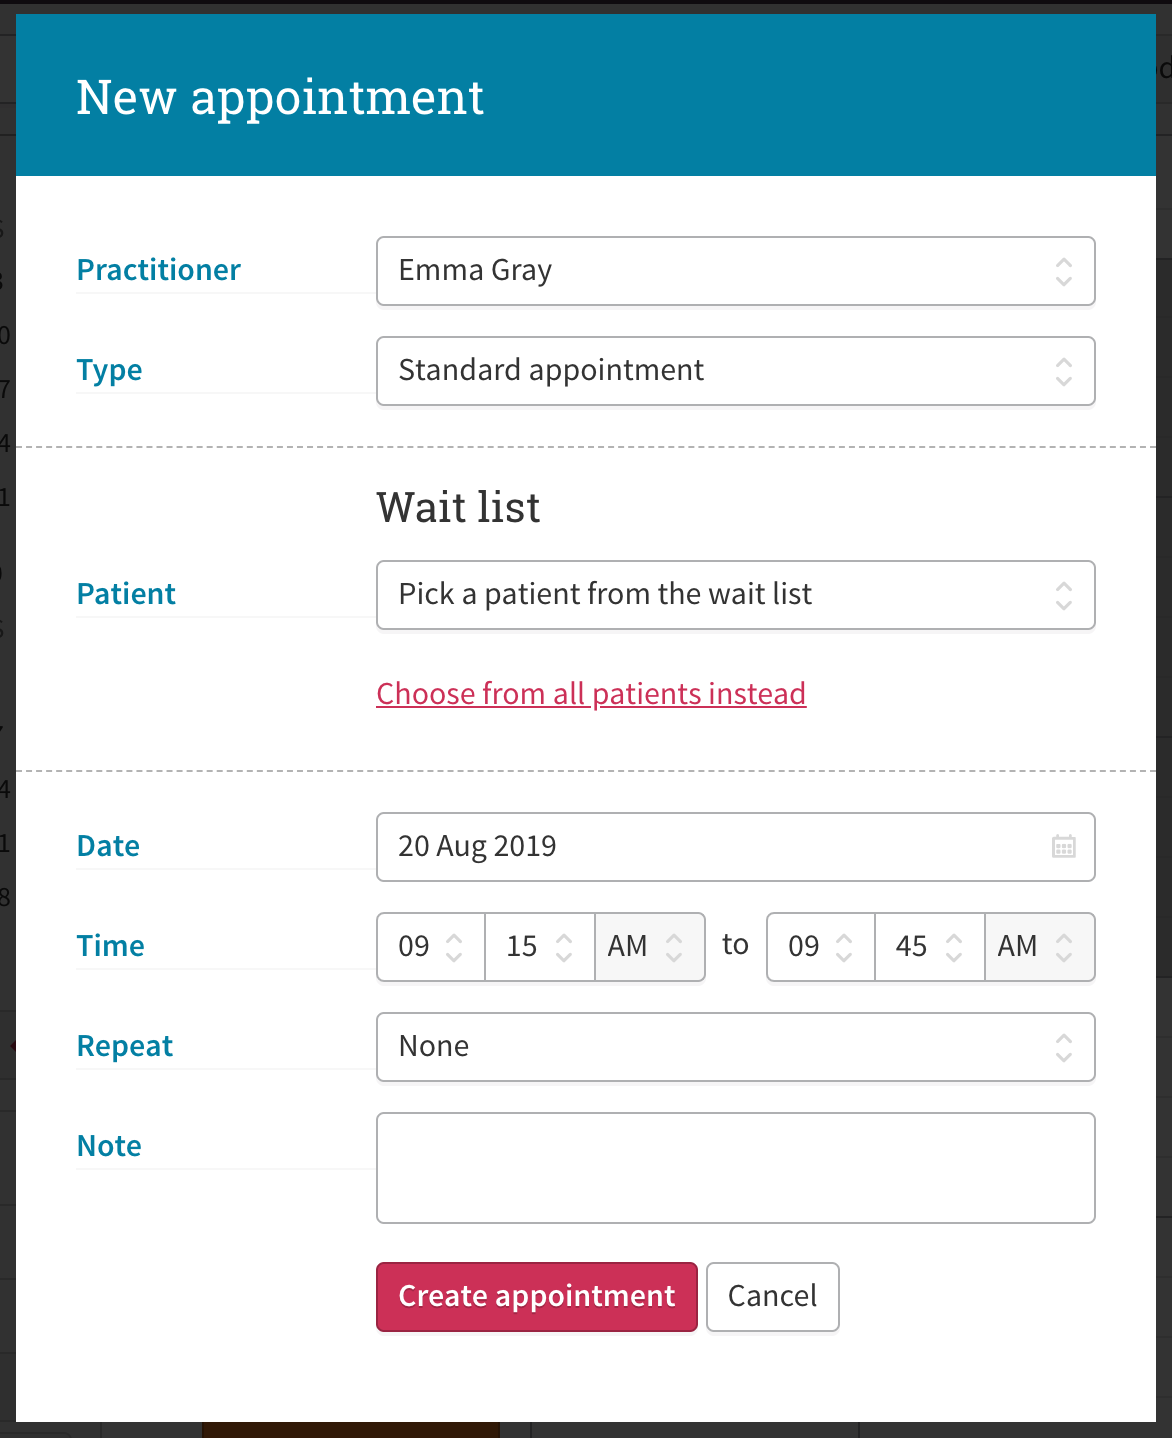 A screenshot showing how to select a patient from the wait list when creating a new appointment